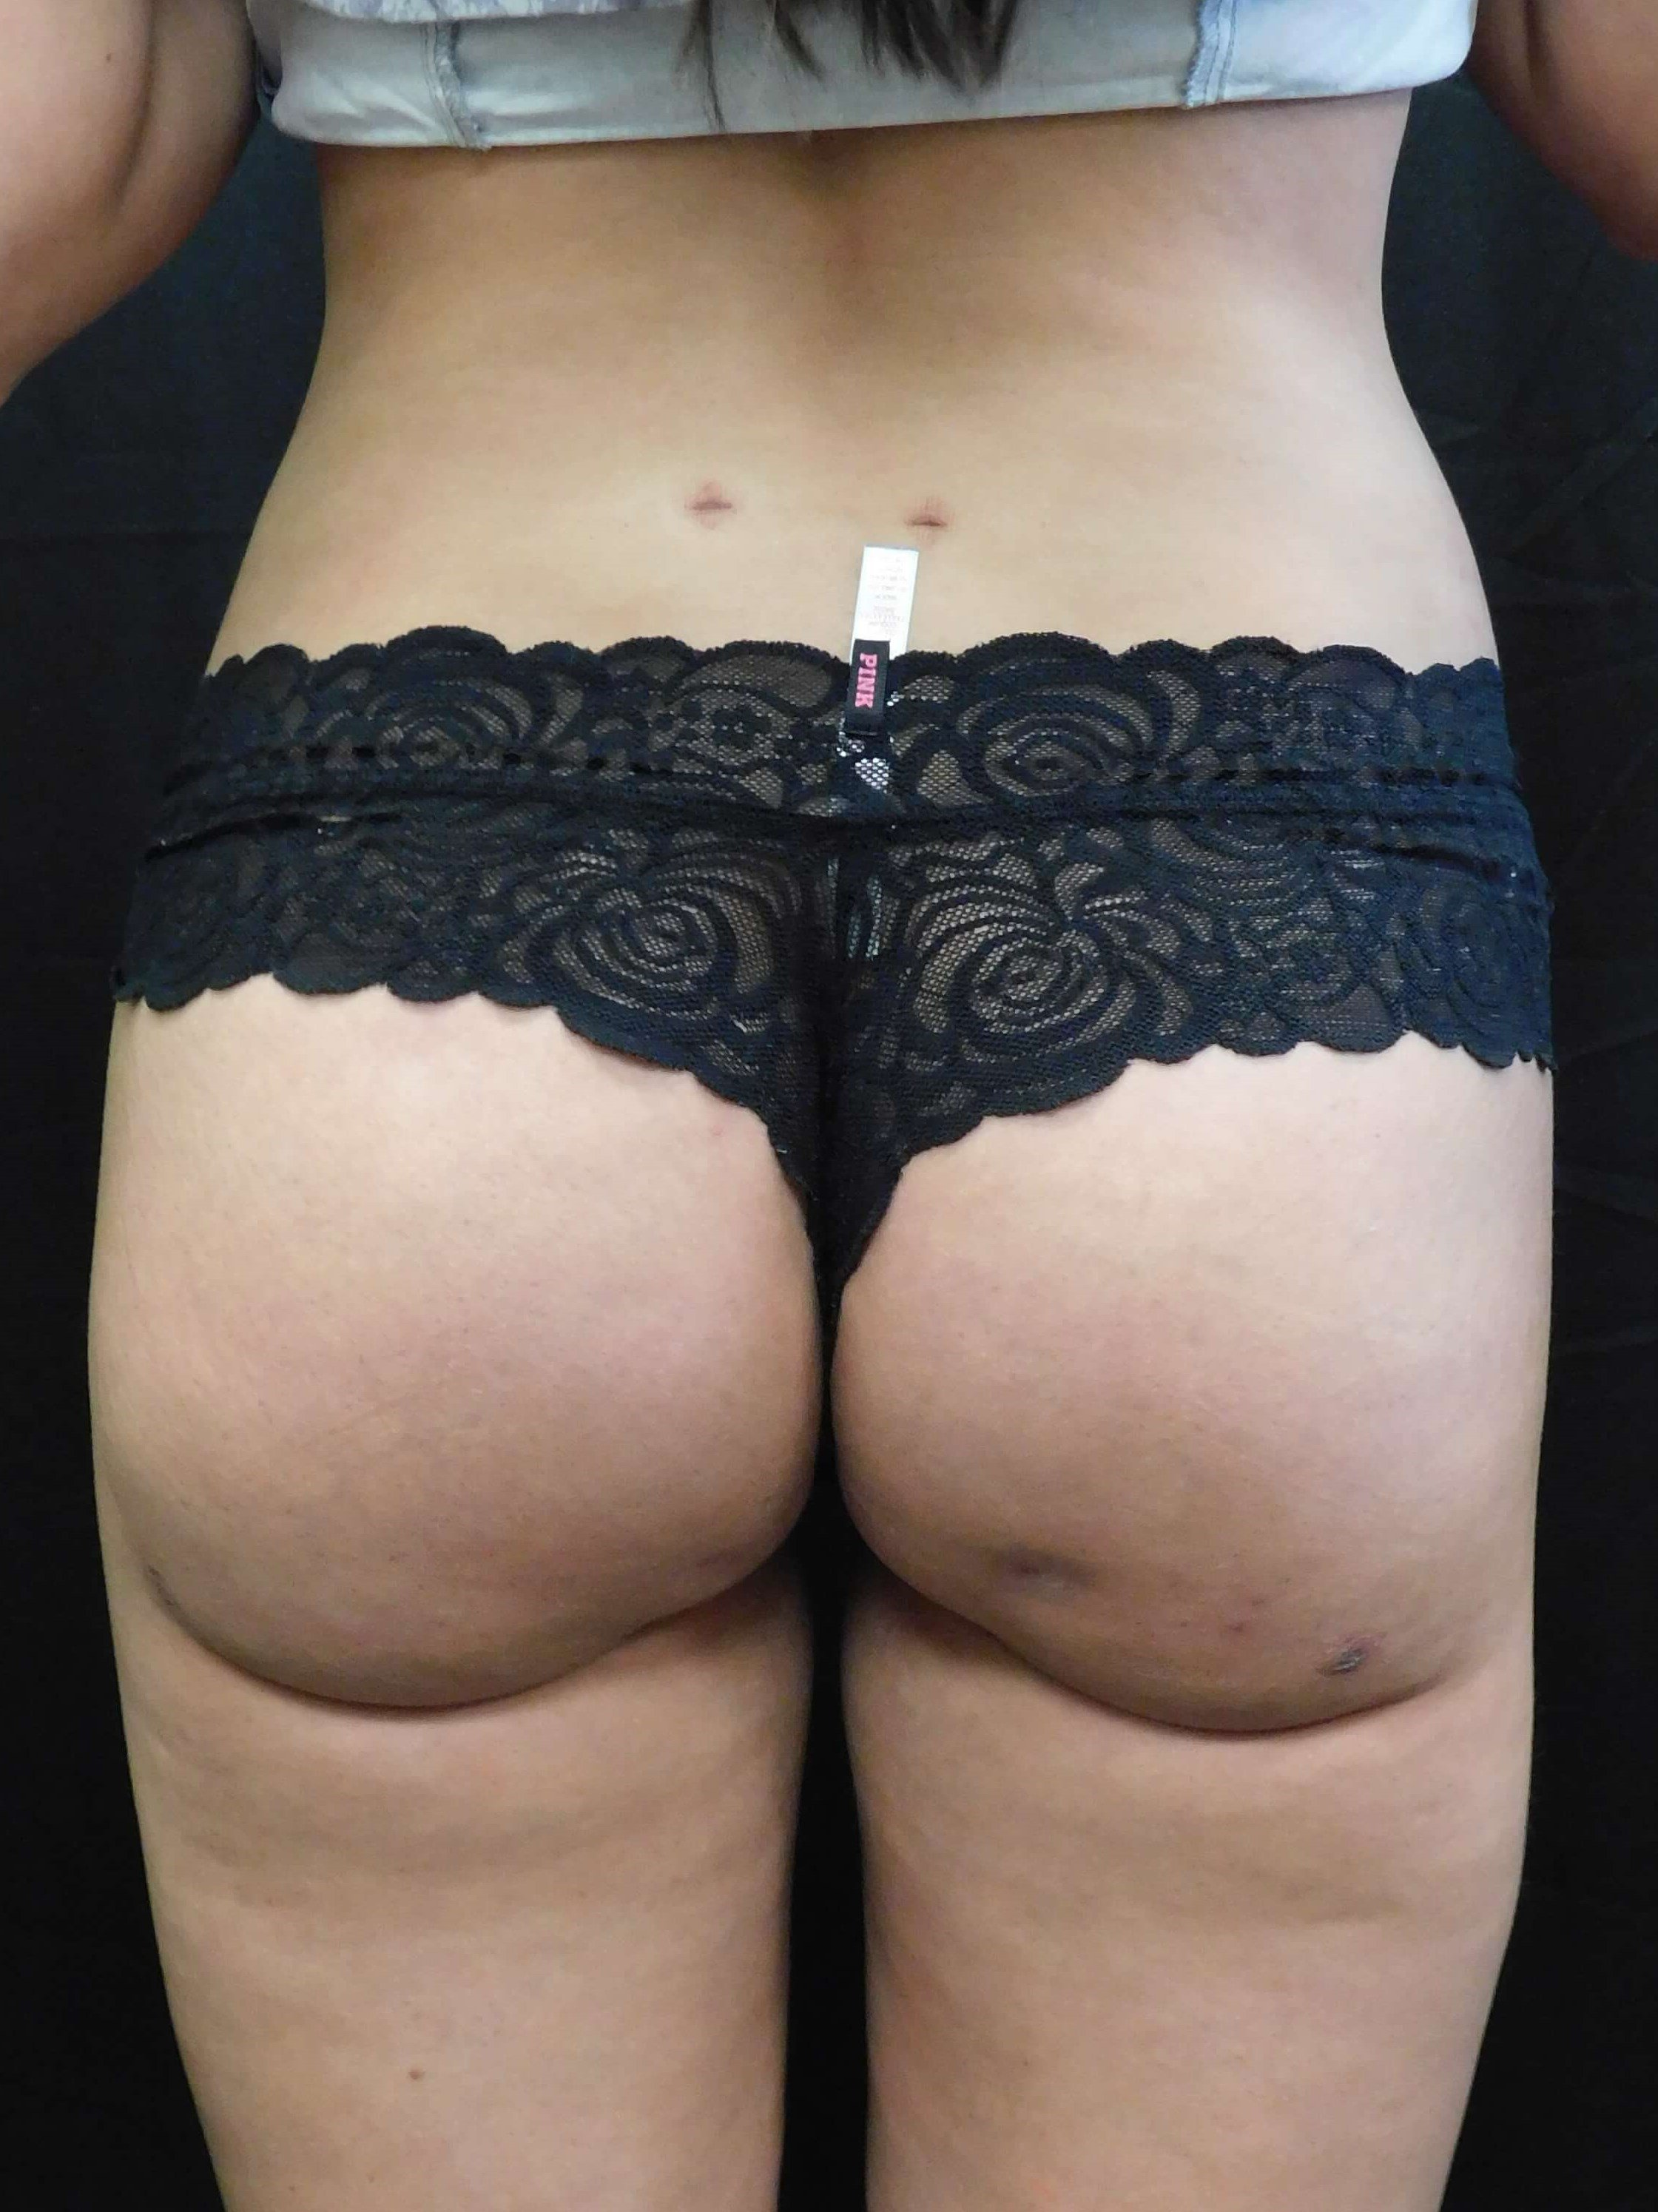 Brazilian Buttock Lift (BBL) After